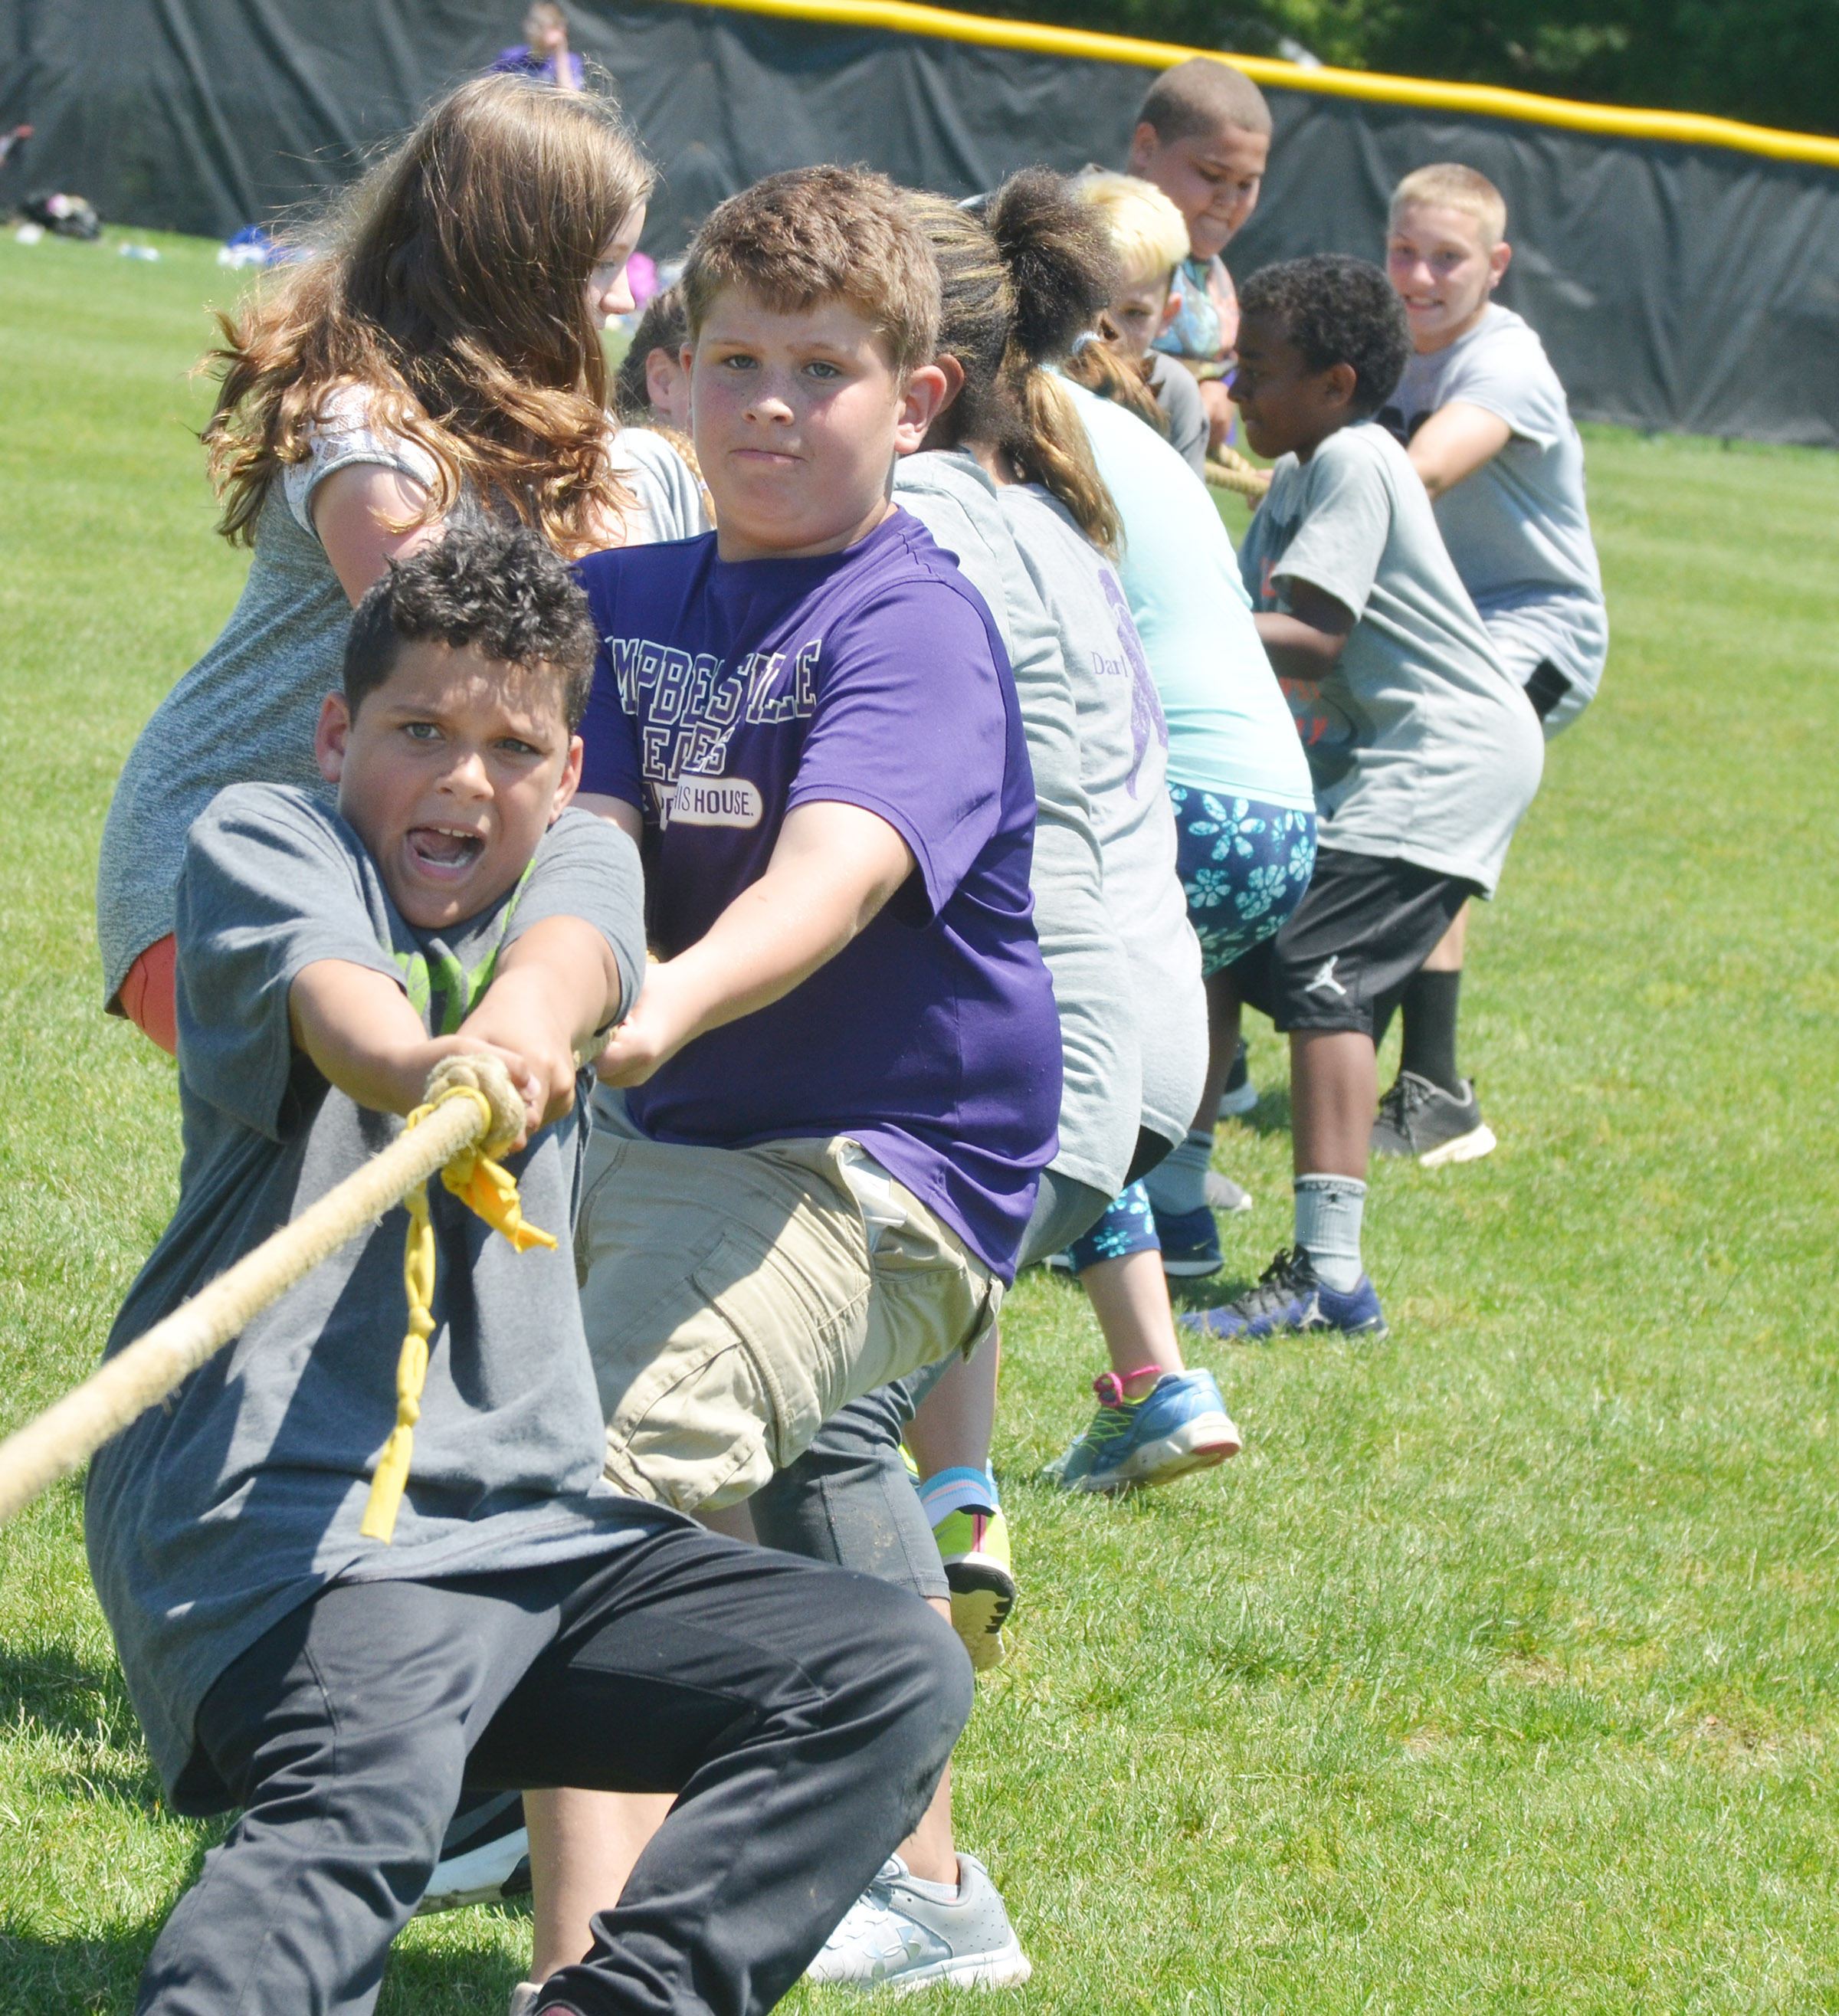 CMS sixth-graders Kaydon Taylor, at left, and Weston Mattingly compete in tug of war.